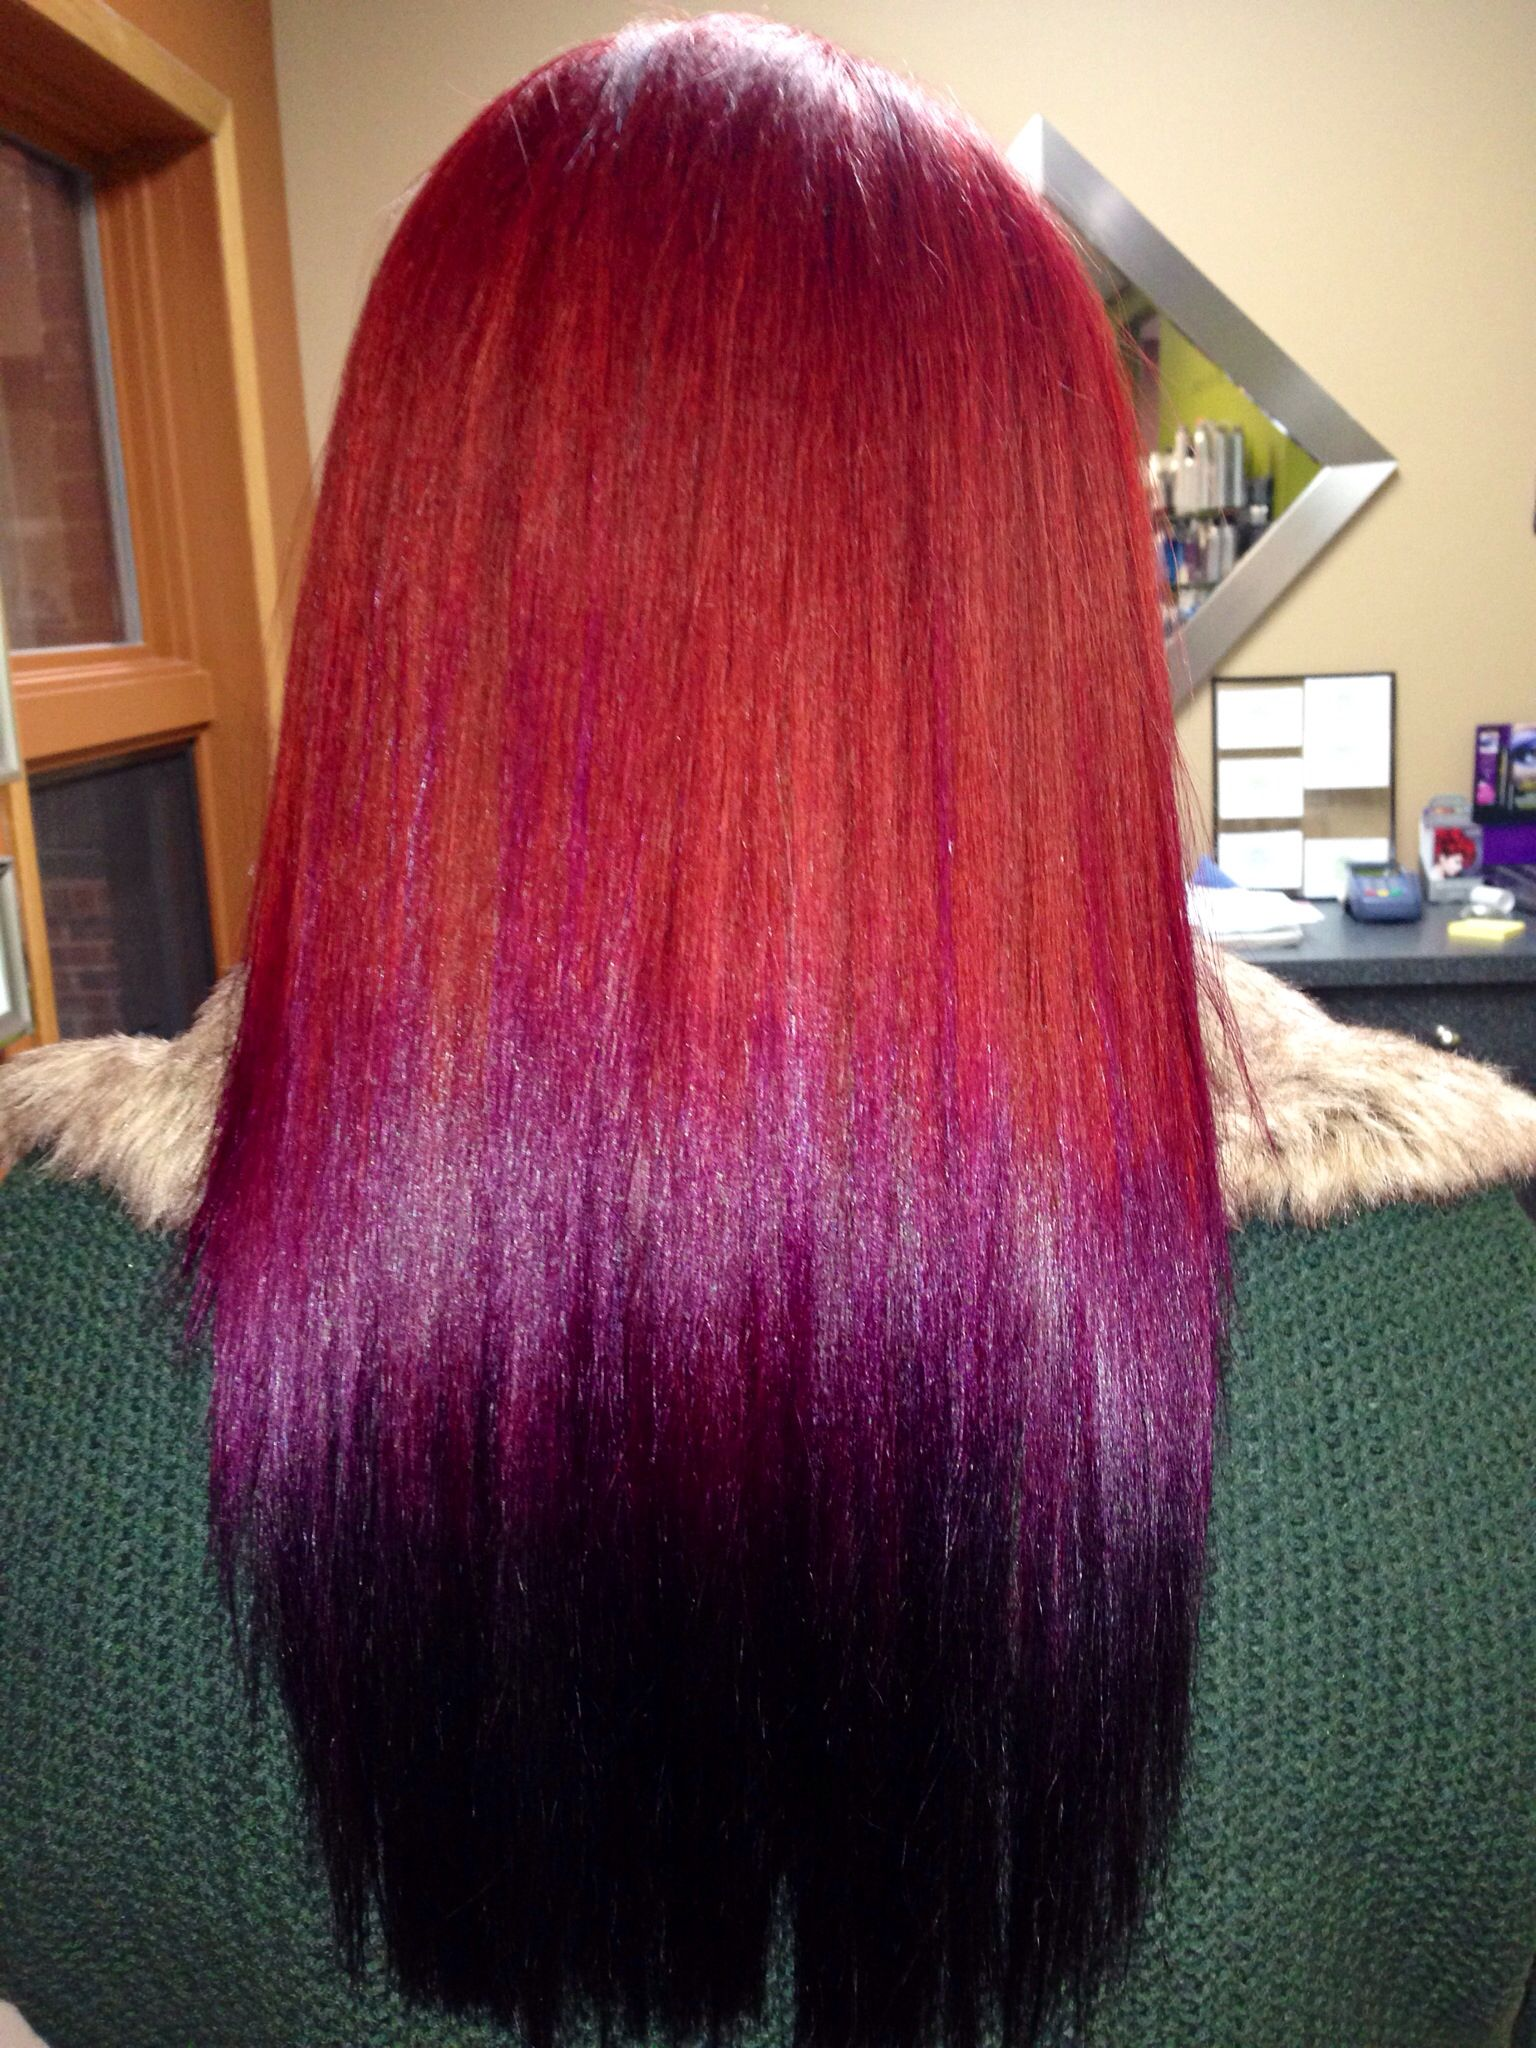 I Used Matrix Socolor Hdrr Amp 20vol Special Effects